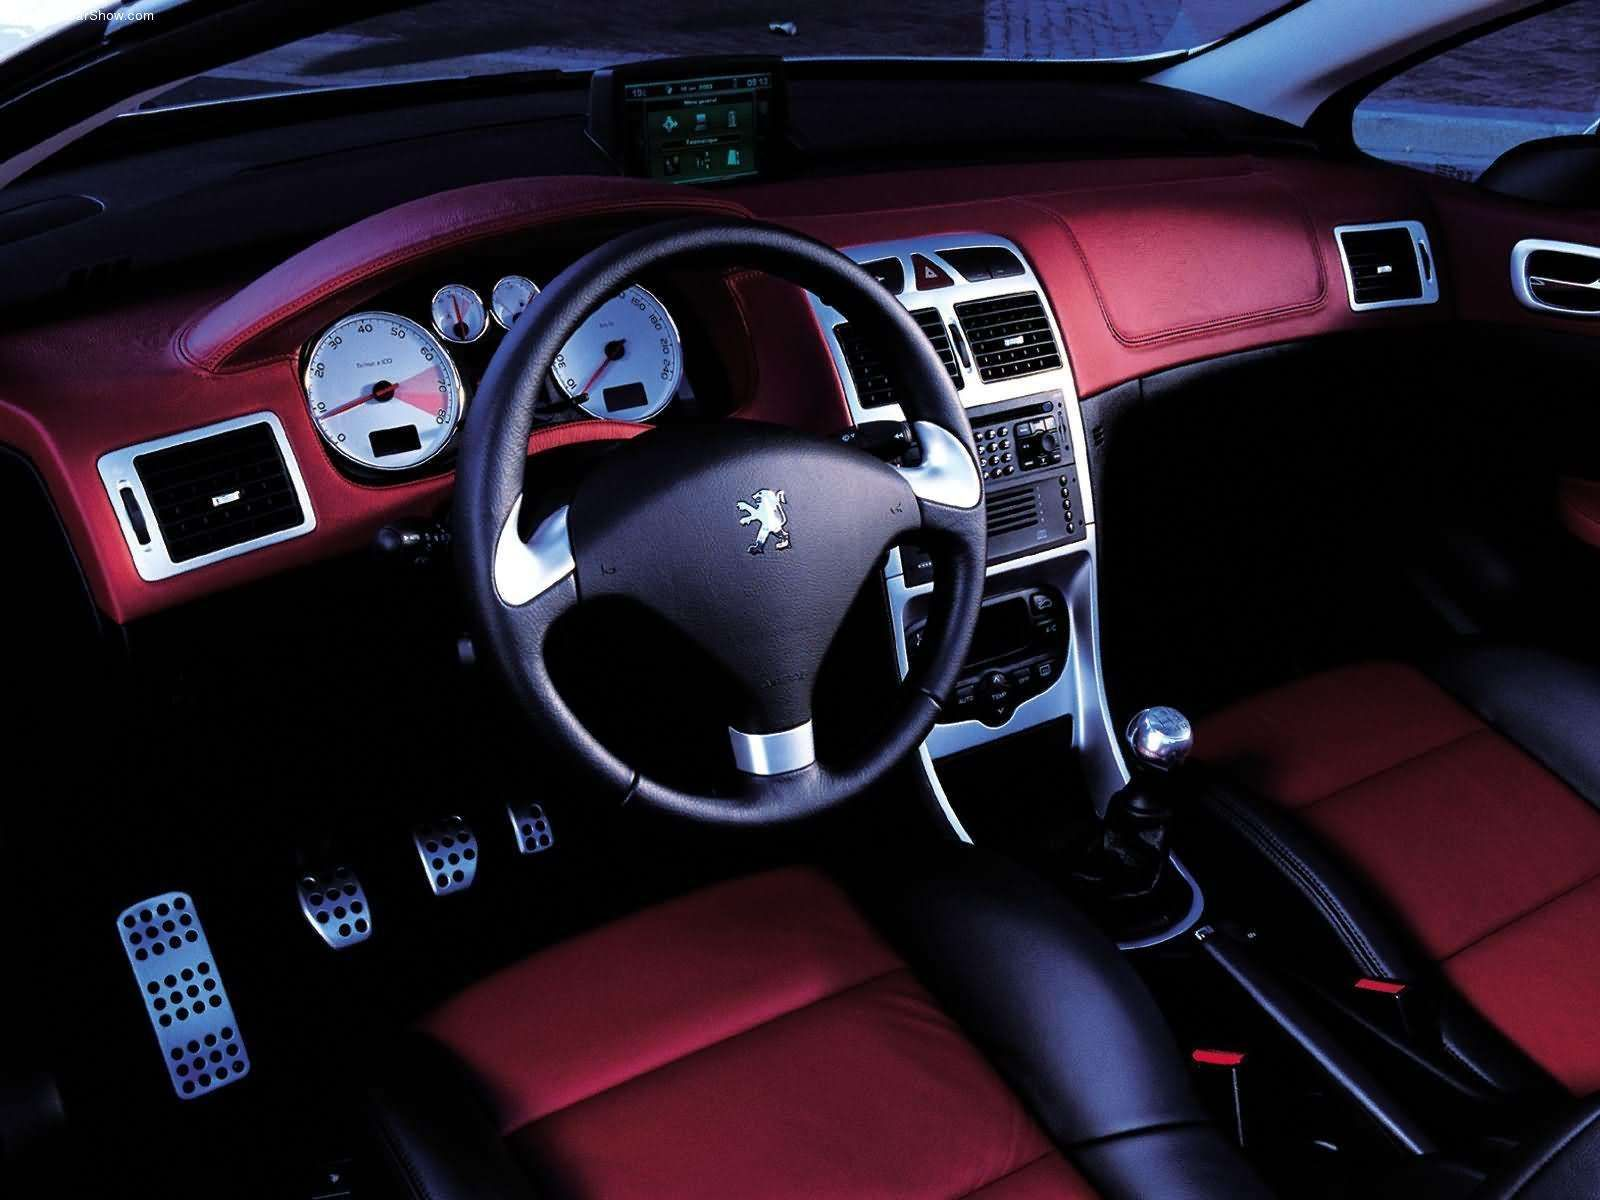 Peugeot 307 cc interior peugeot fascination pinterest for Interieur 306